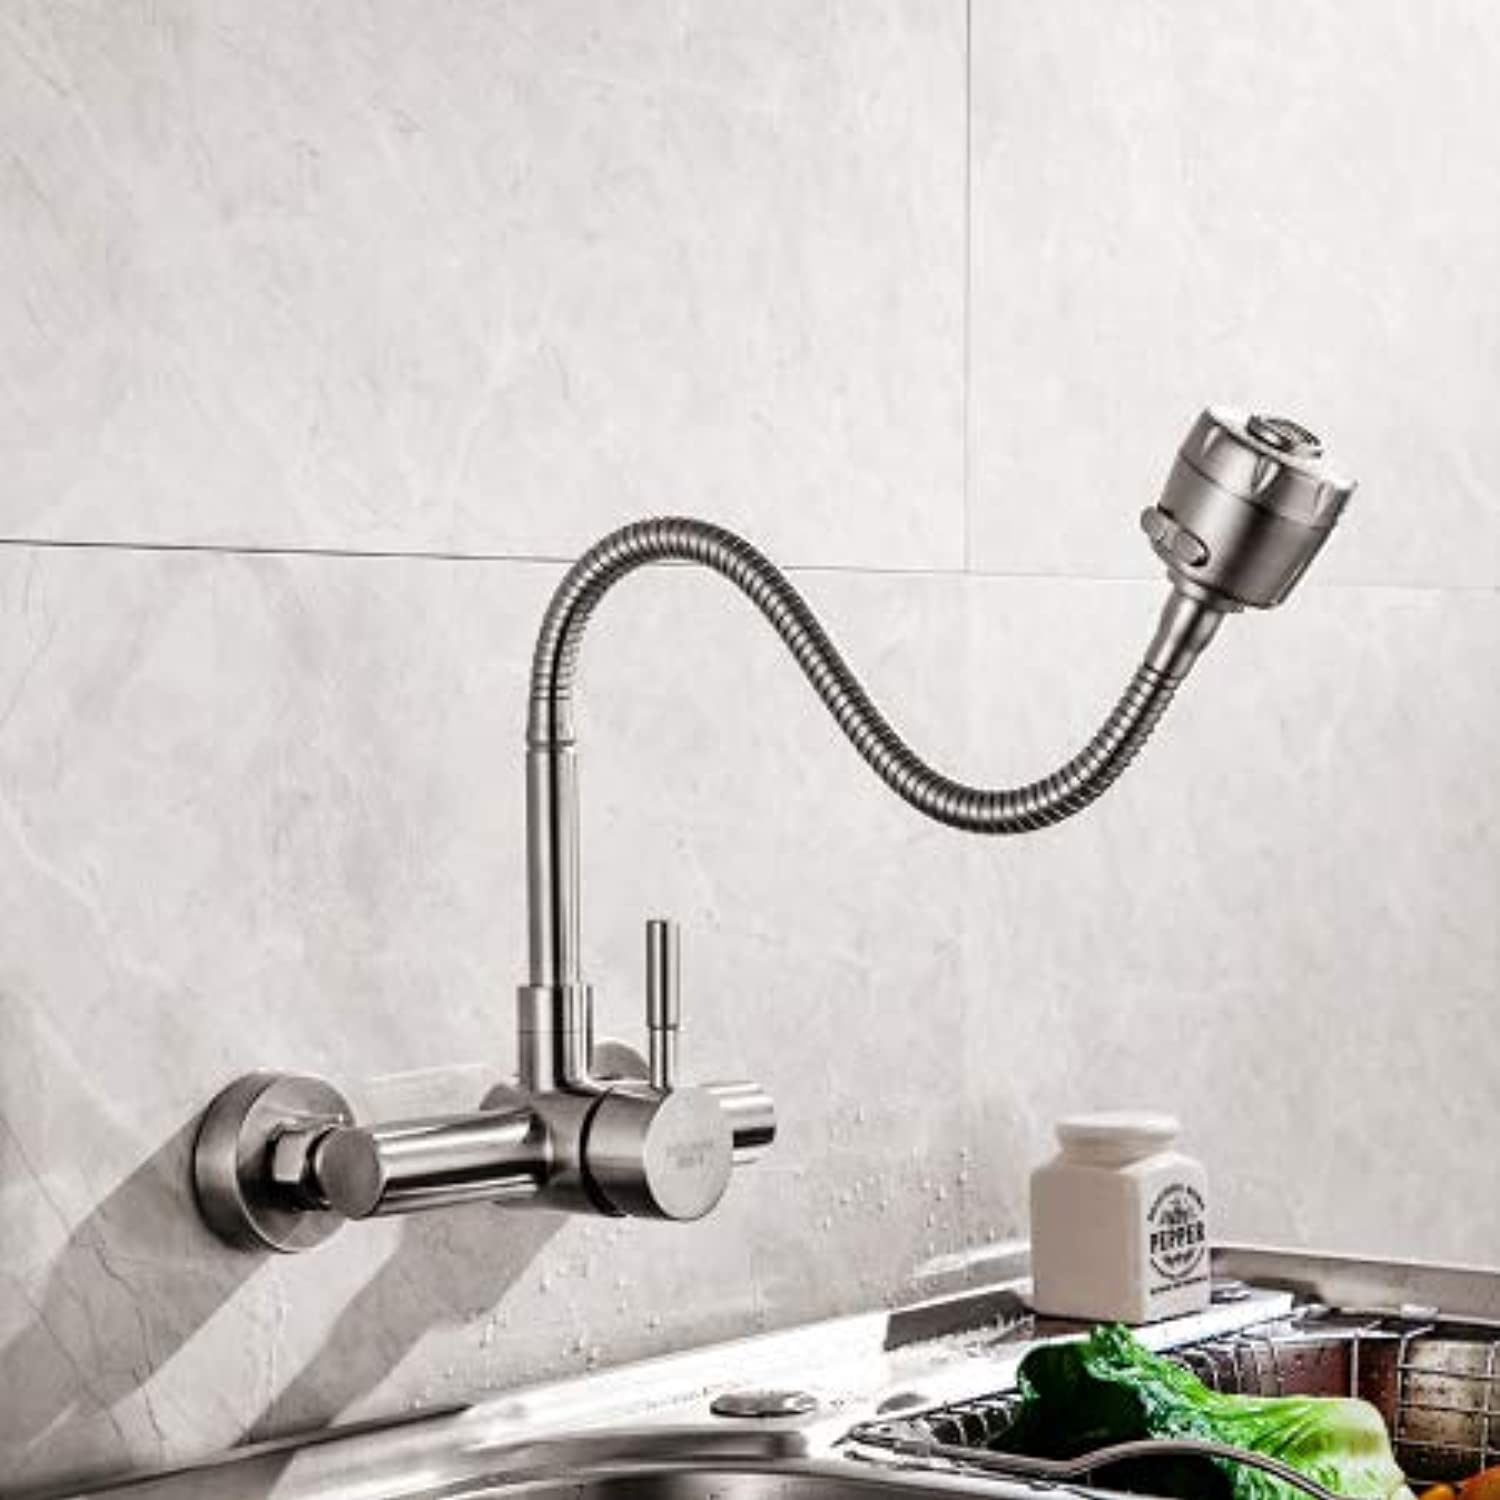 In-Wall Kitchen Faucet 304 Stainless Steel Sinks Hot and Cold Water Faucet Laundry Pool Sink Mixing Valve Wall Faucet